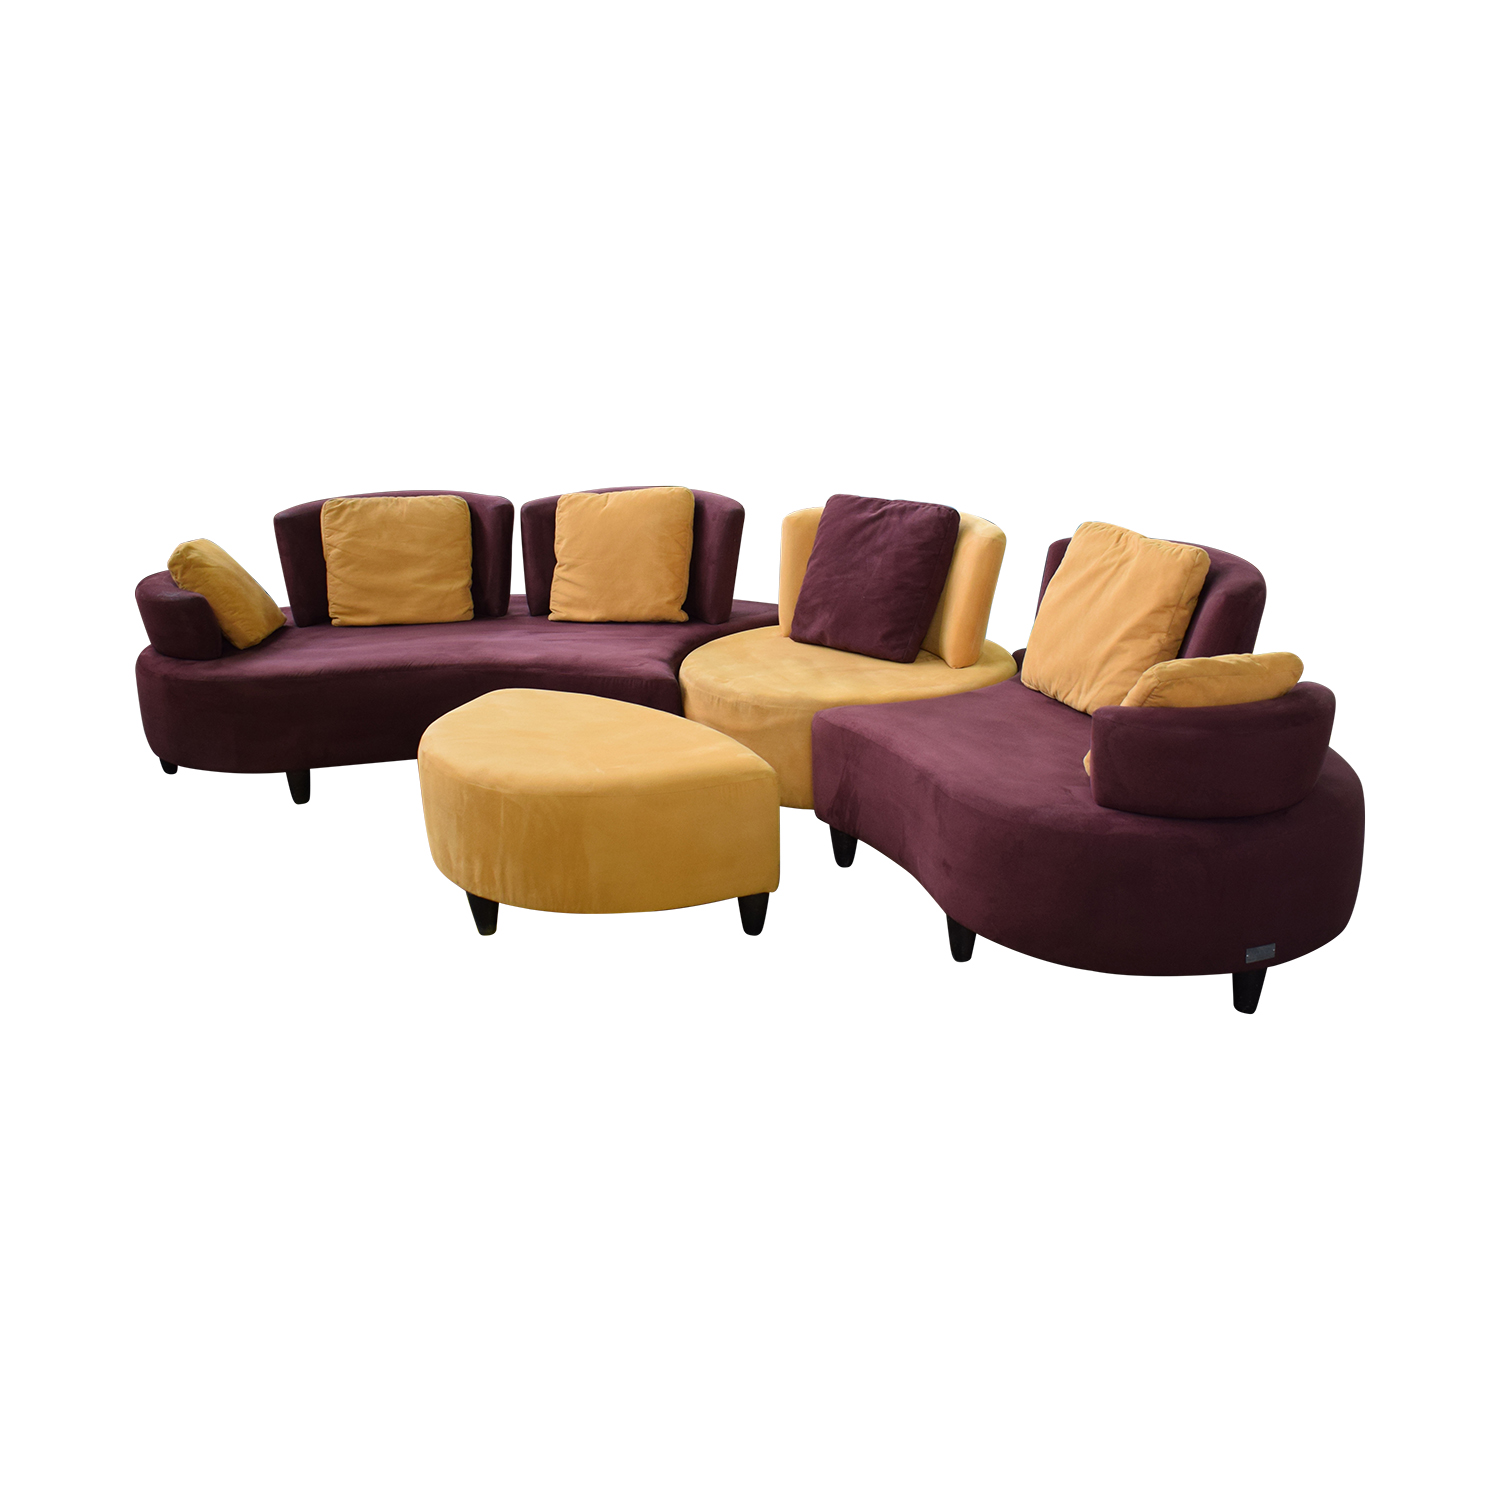 shop Normand Couture Design Cameleon Sectional Sofa Normand Couture Design